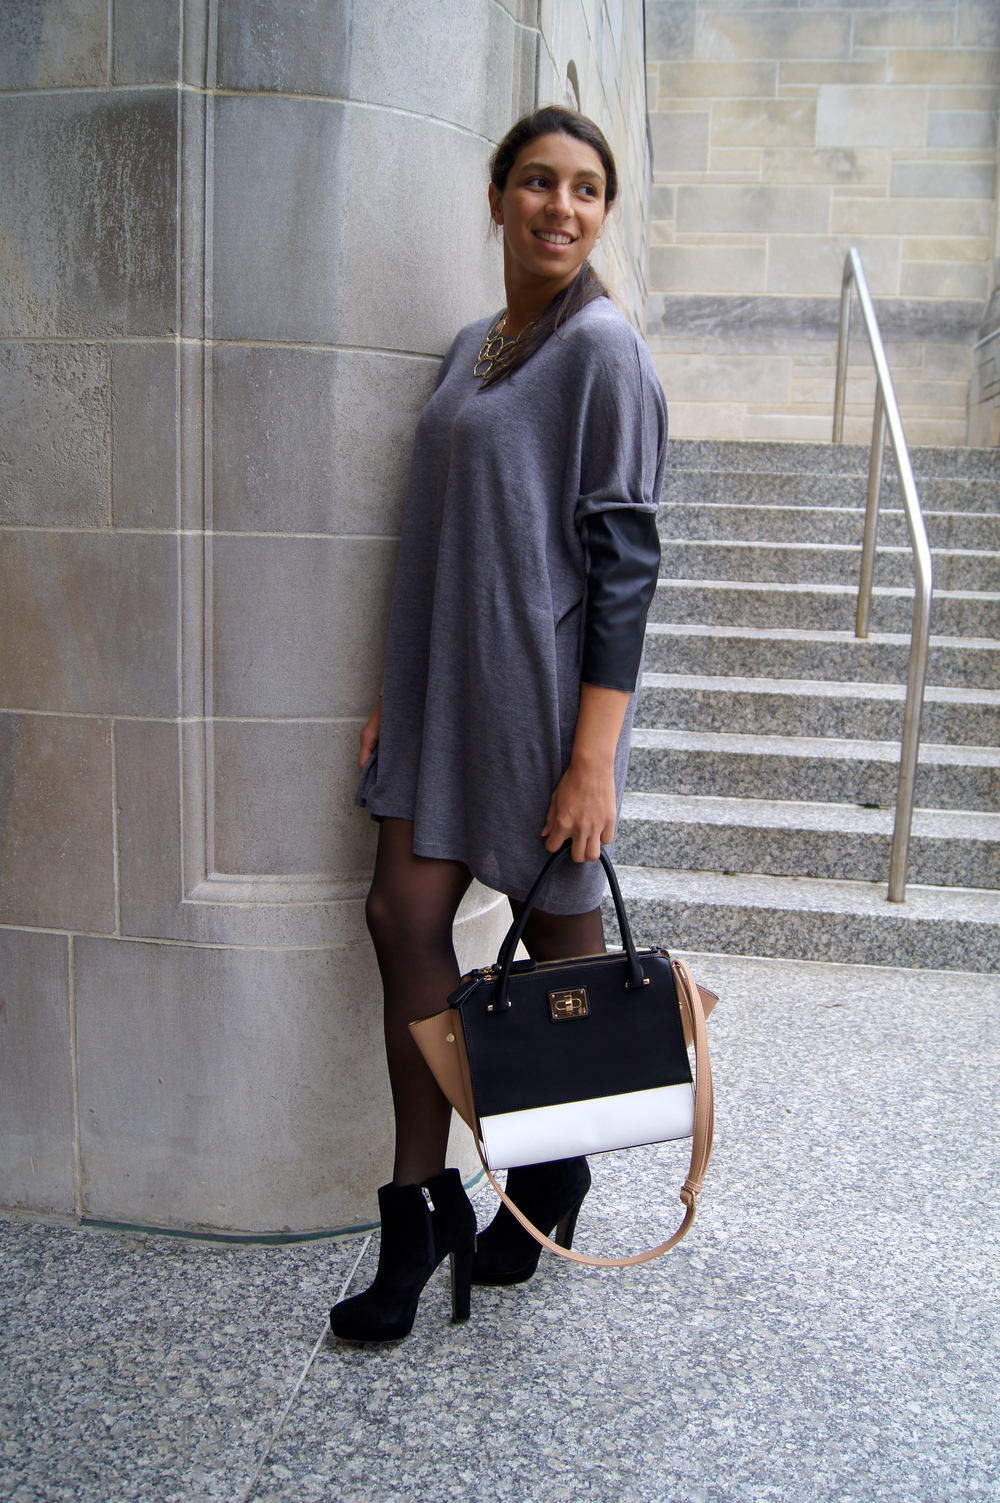 This look can be made more casual by throwing on some dark boots and maybe a light jacket. A big reason that I Iove this sweater dress is that I can wear it with heels to make it more dressed up, but also wear it to class or any other casual event.